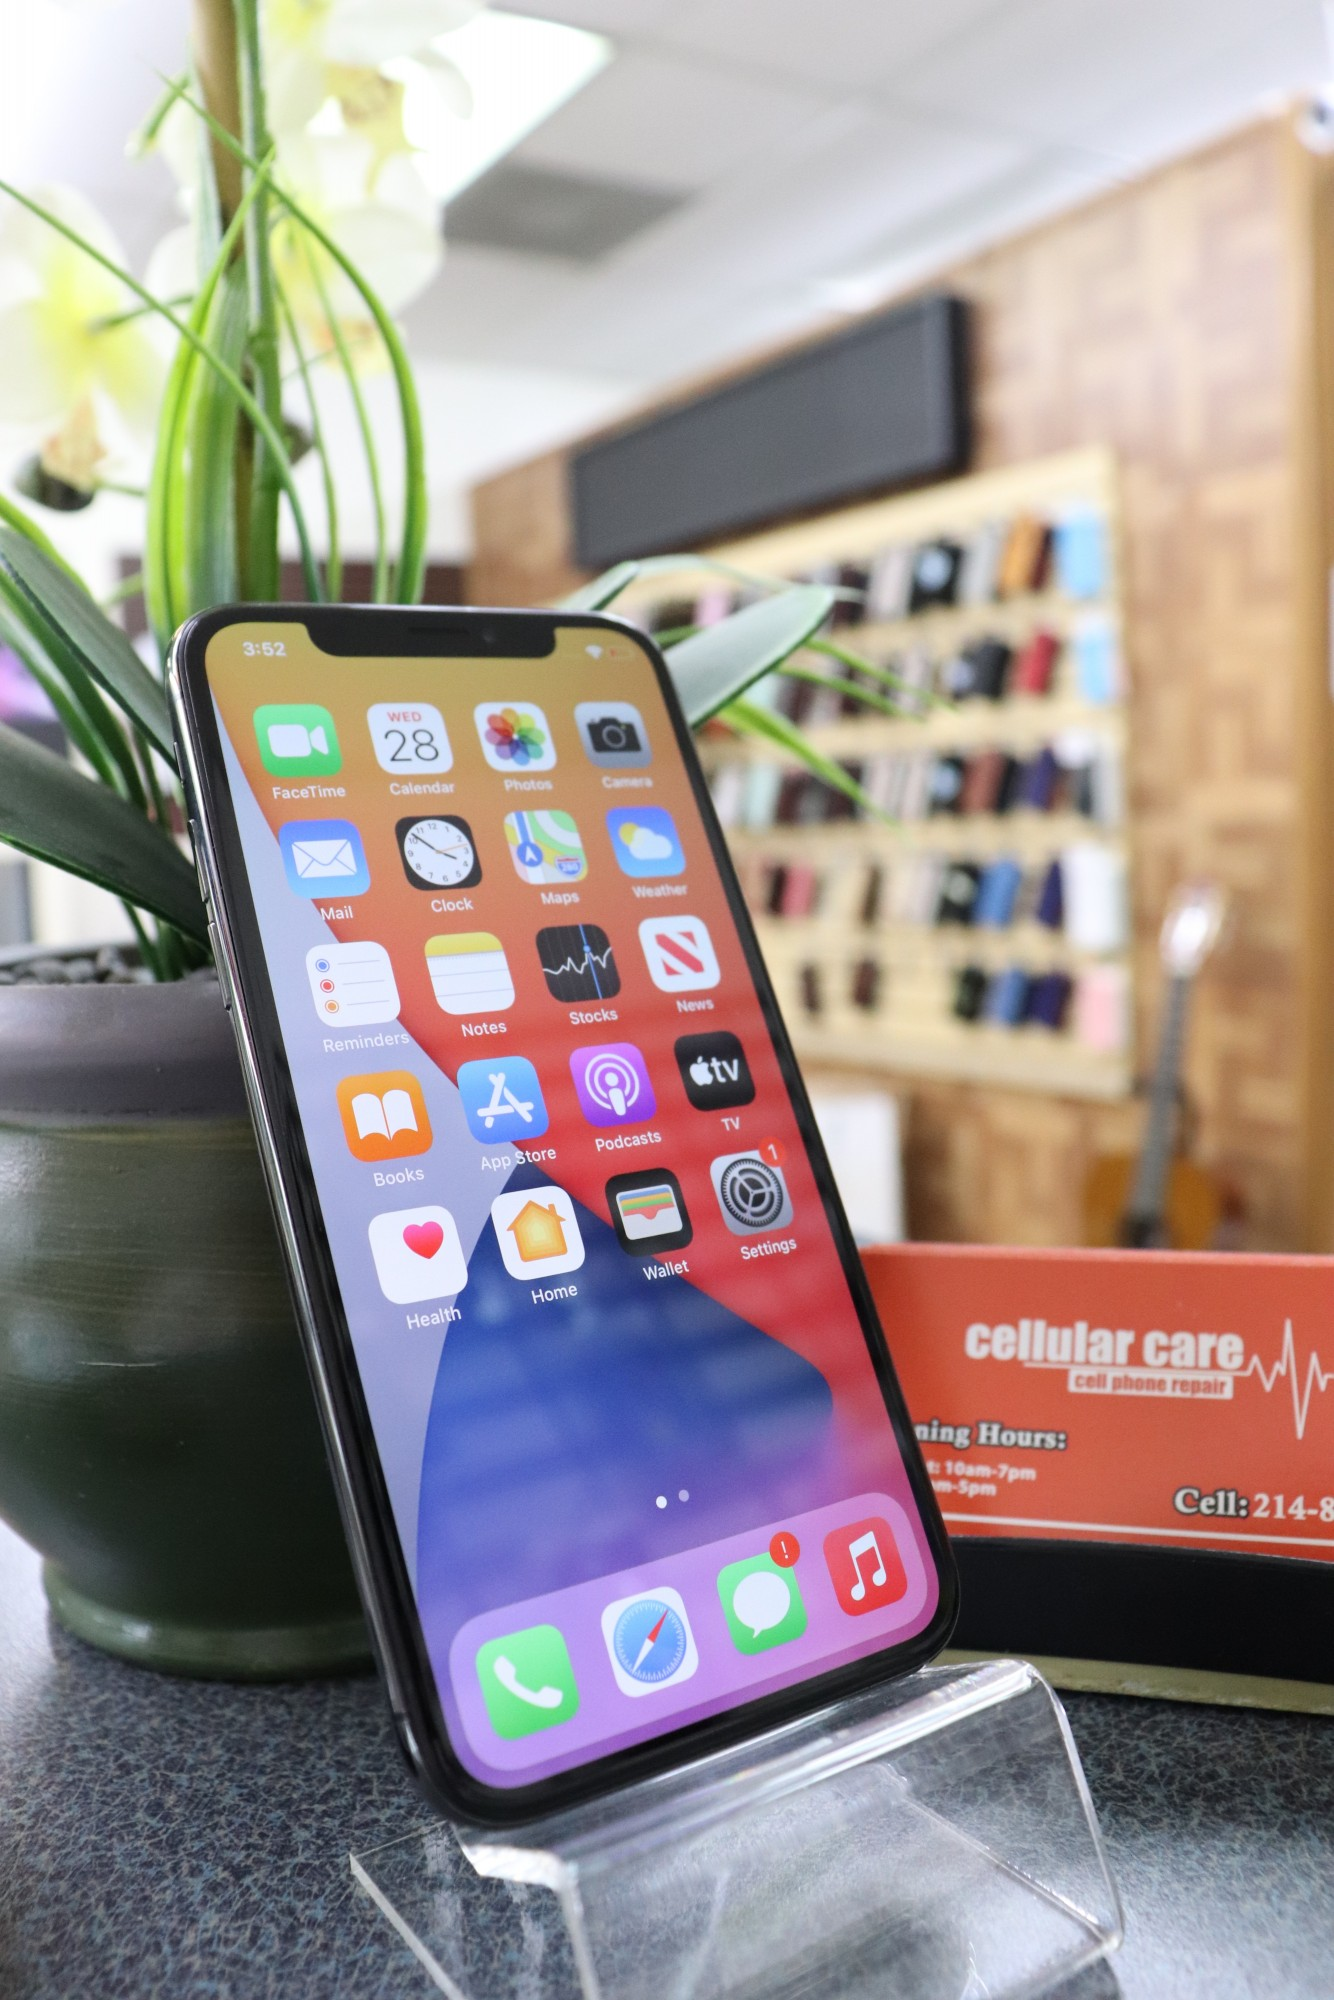 1580 – iPhone X 64GB Black Unlocked $320 – Store Pick Up Address: Cellular Care 300 N Coit Rd #157 Richardson TX, 75080 Mon-Sat: 11Am to 7Pm Sun: 12 to 5Pm *About this item: -Condition: 9.